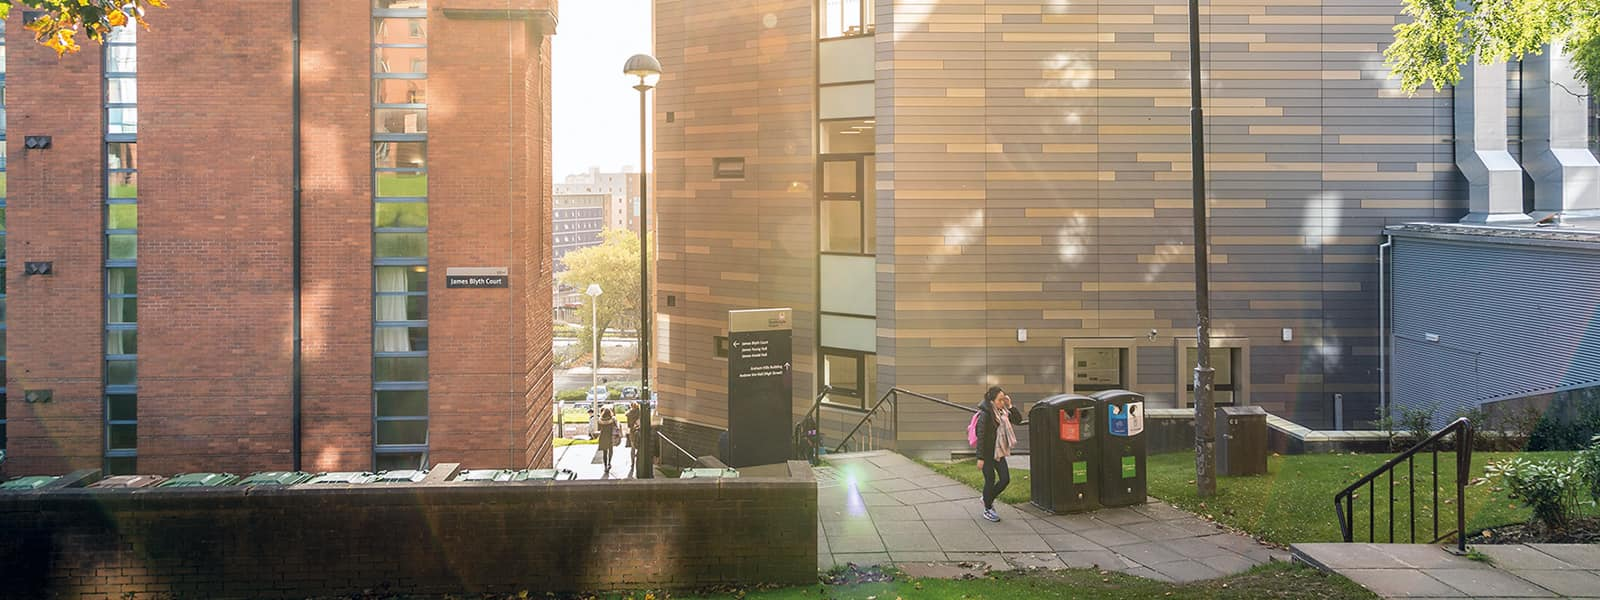 University of Strathclyde halls of residence